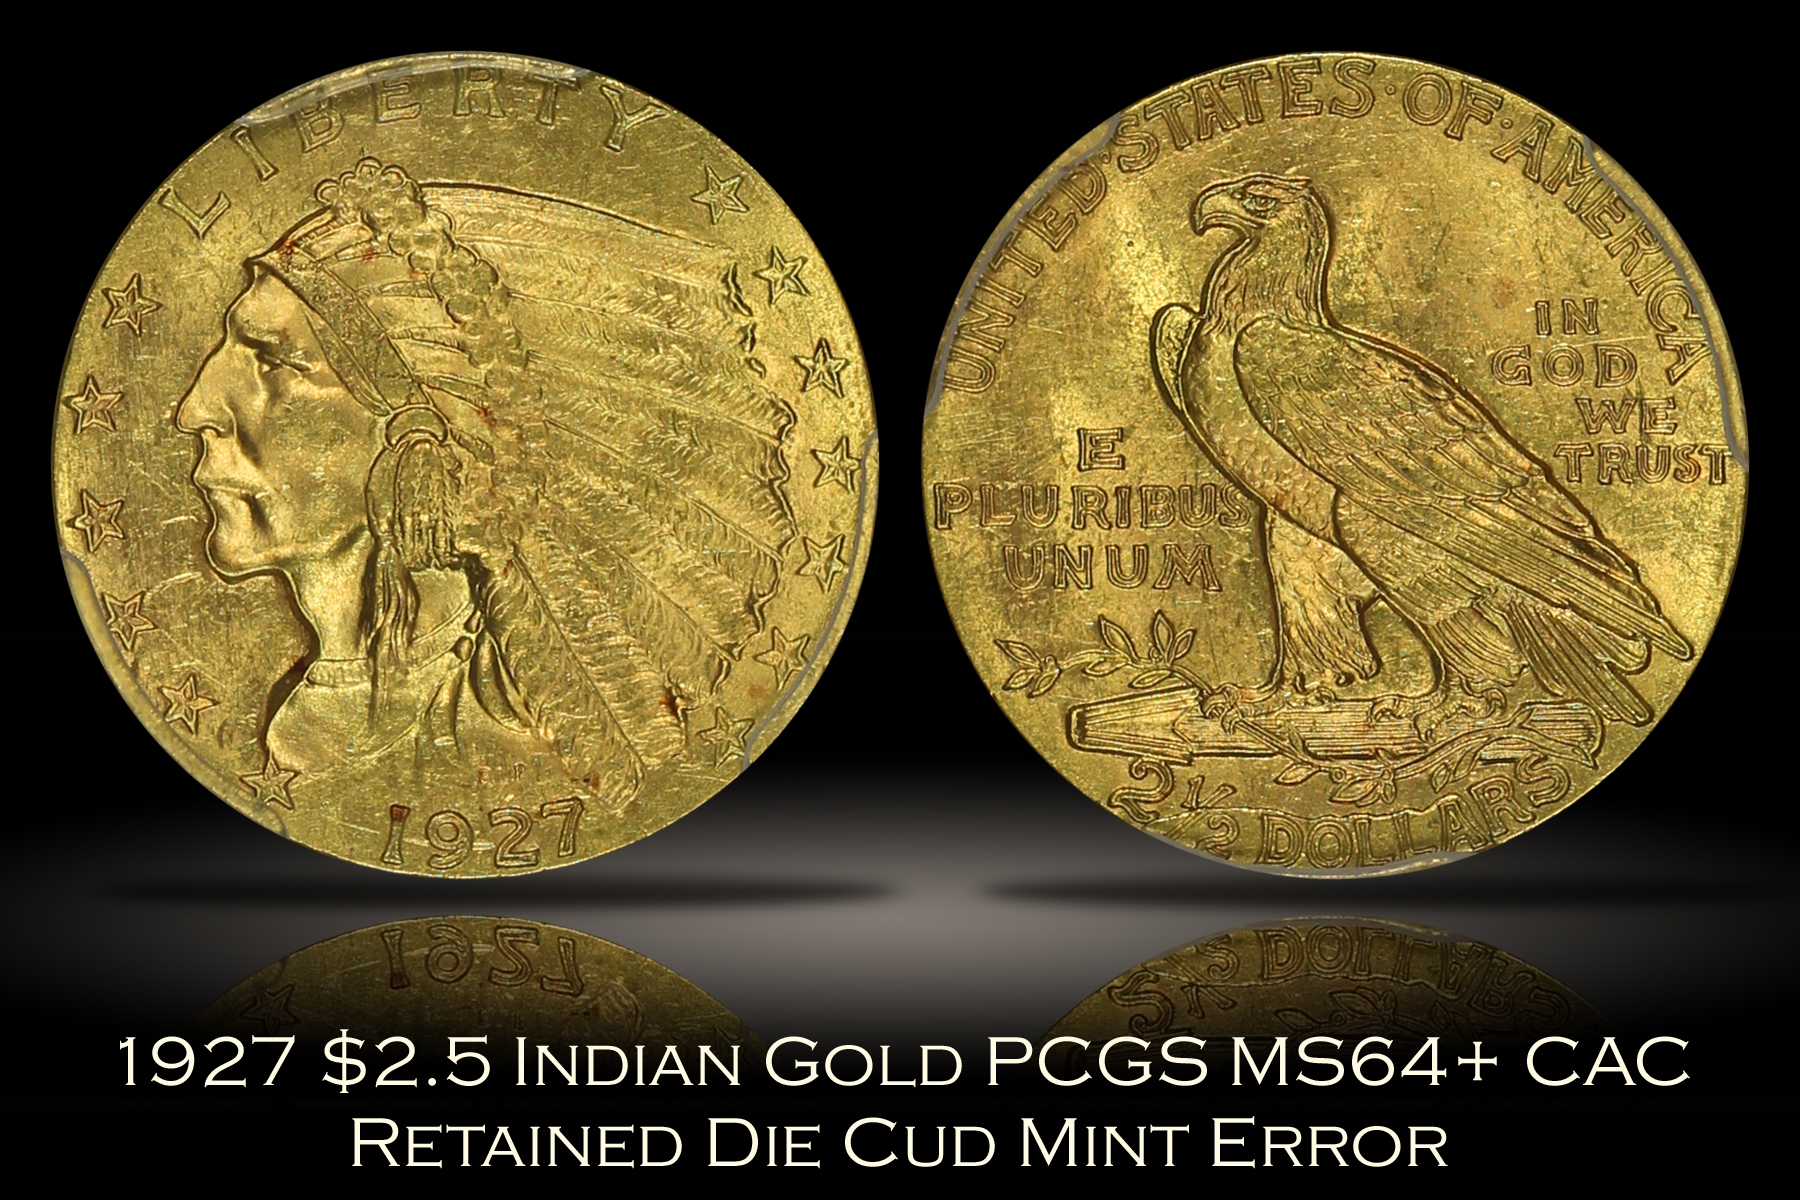 1927 $2.5 Indian Gold PCGS MS64+ CAC Retained Die Cud Error